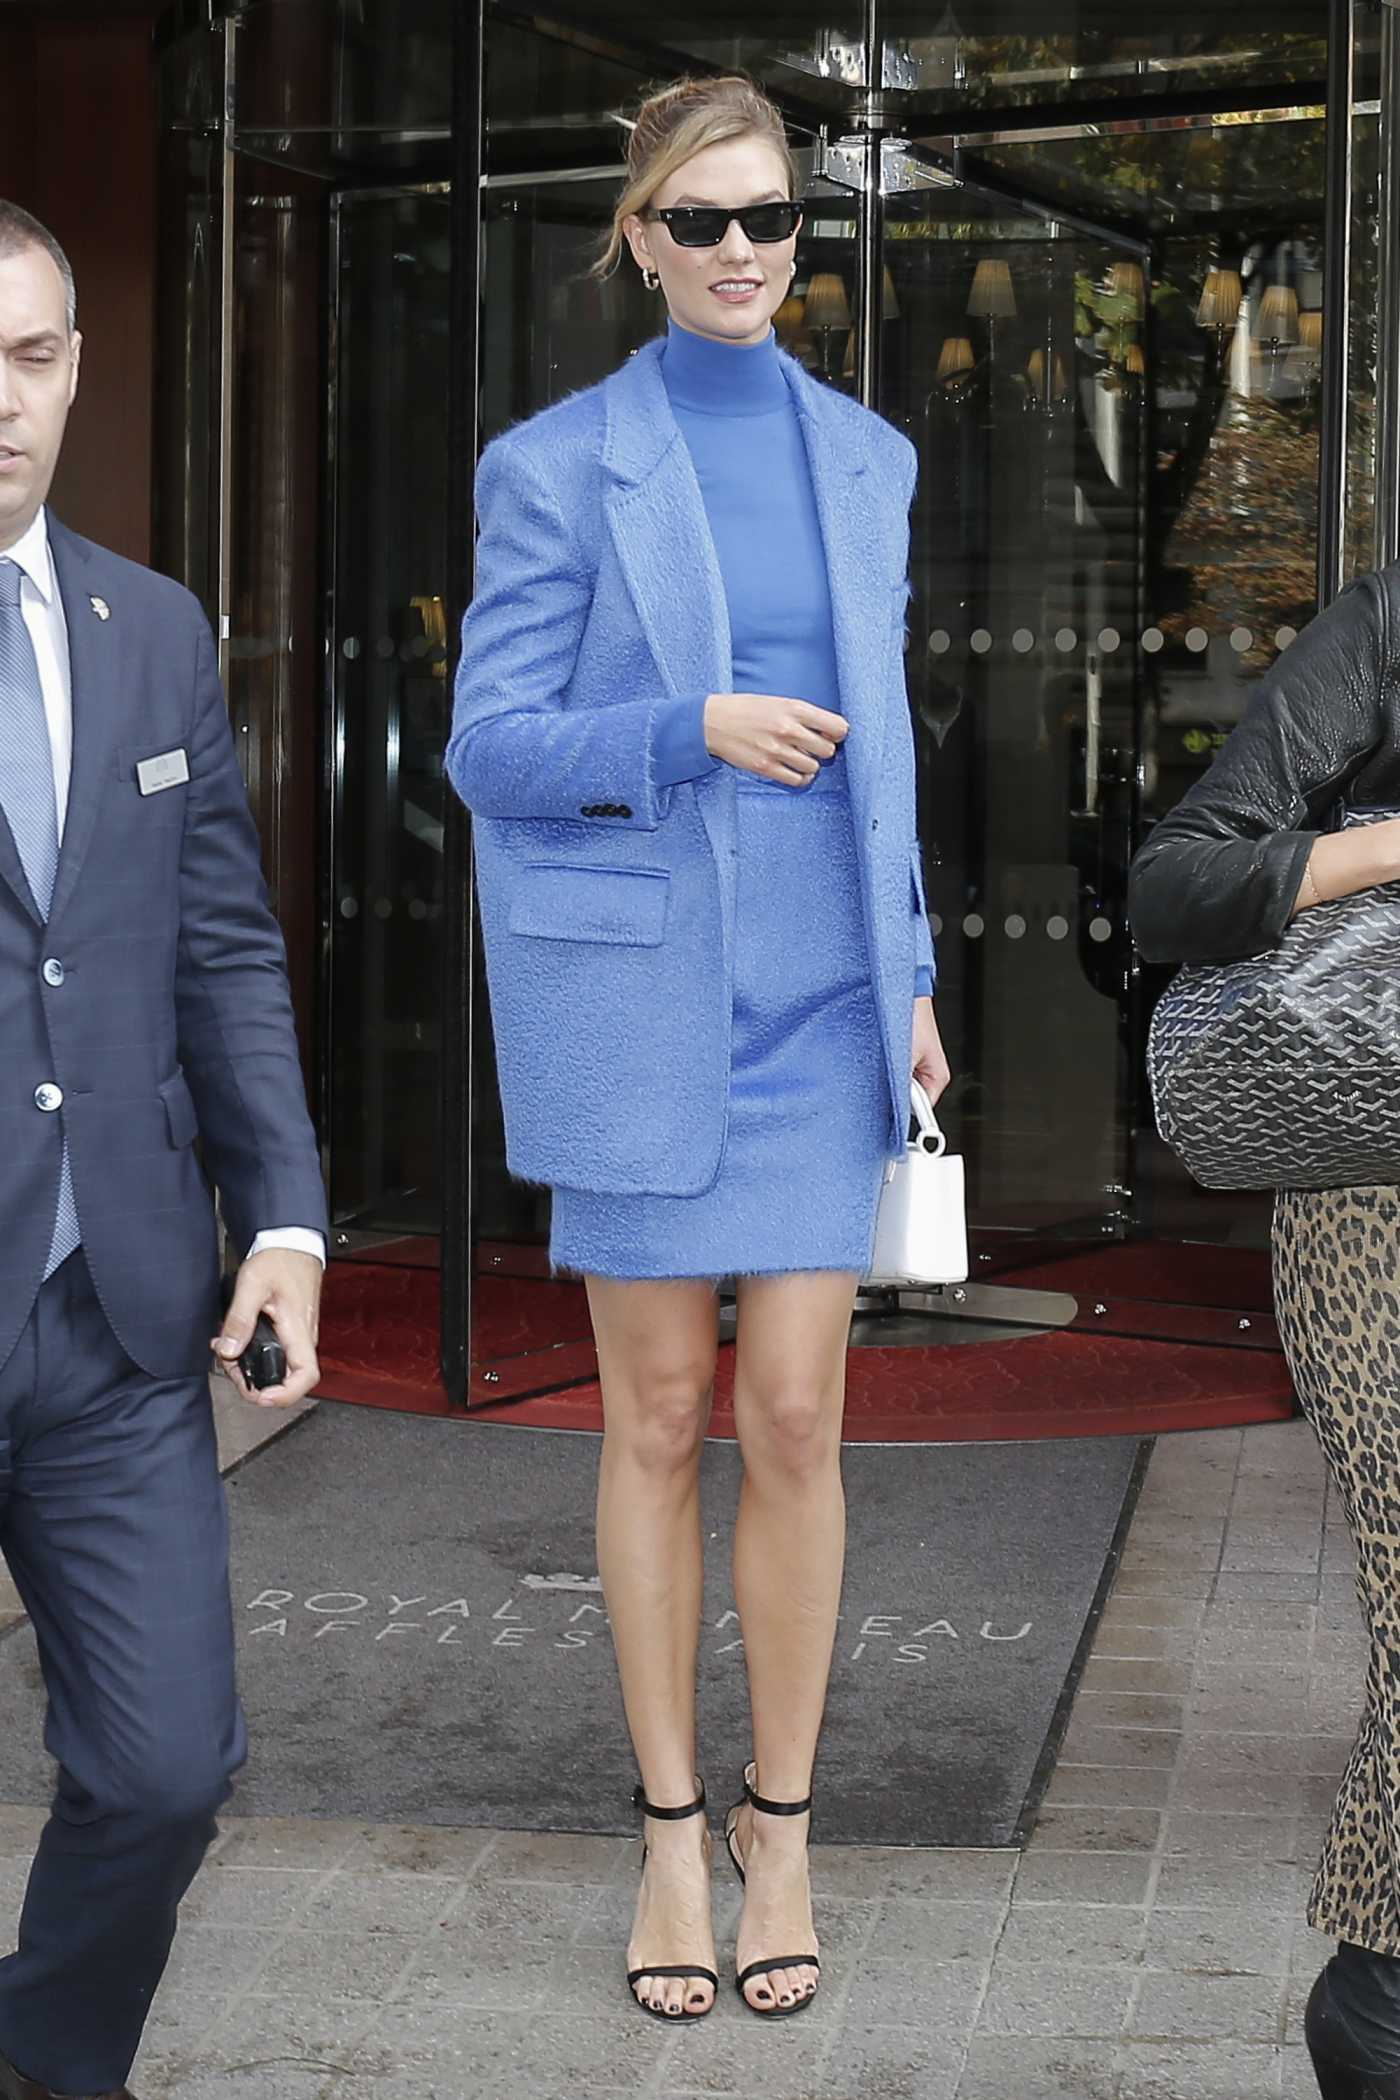 Karlie Kloss in a Blue Suit Leaves Her Hotel in Paris 09/24/2019